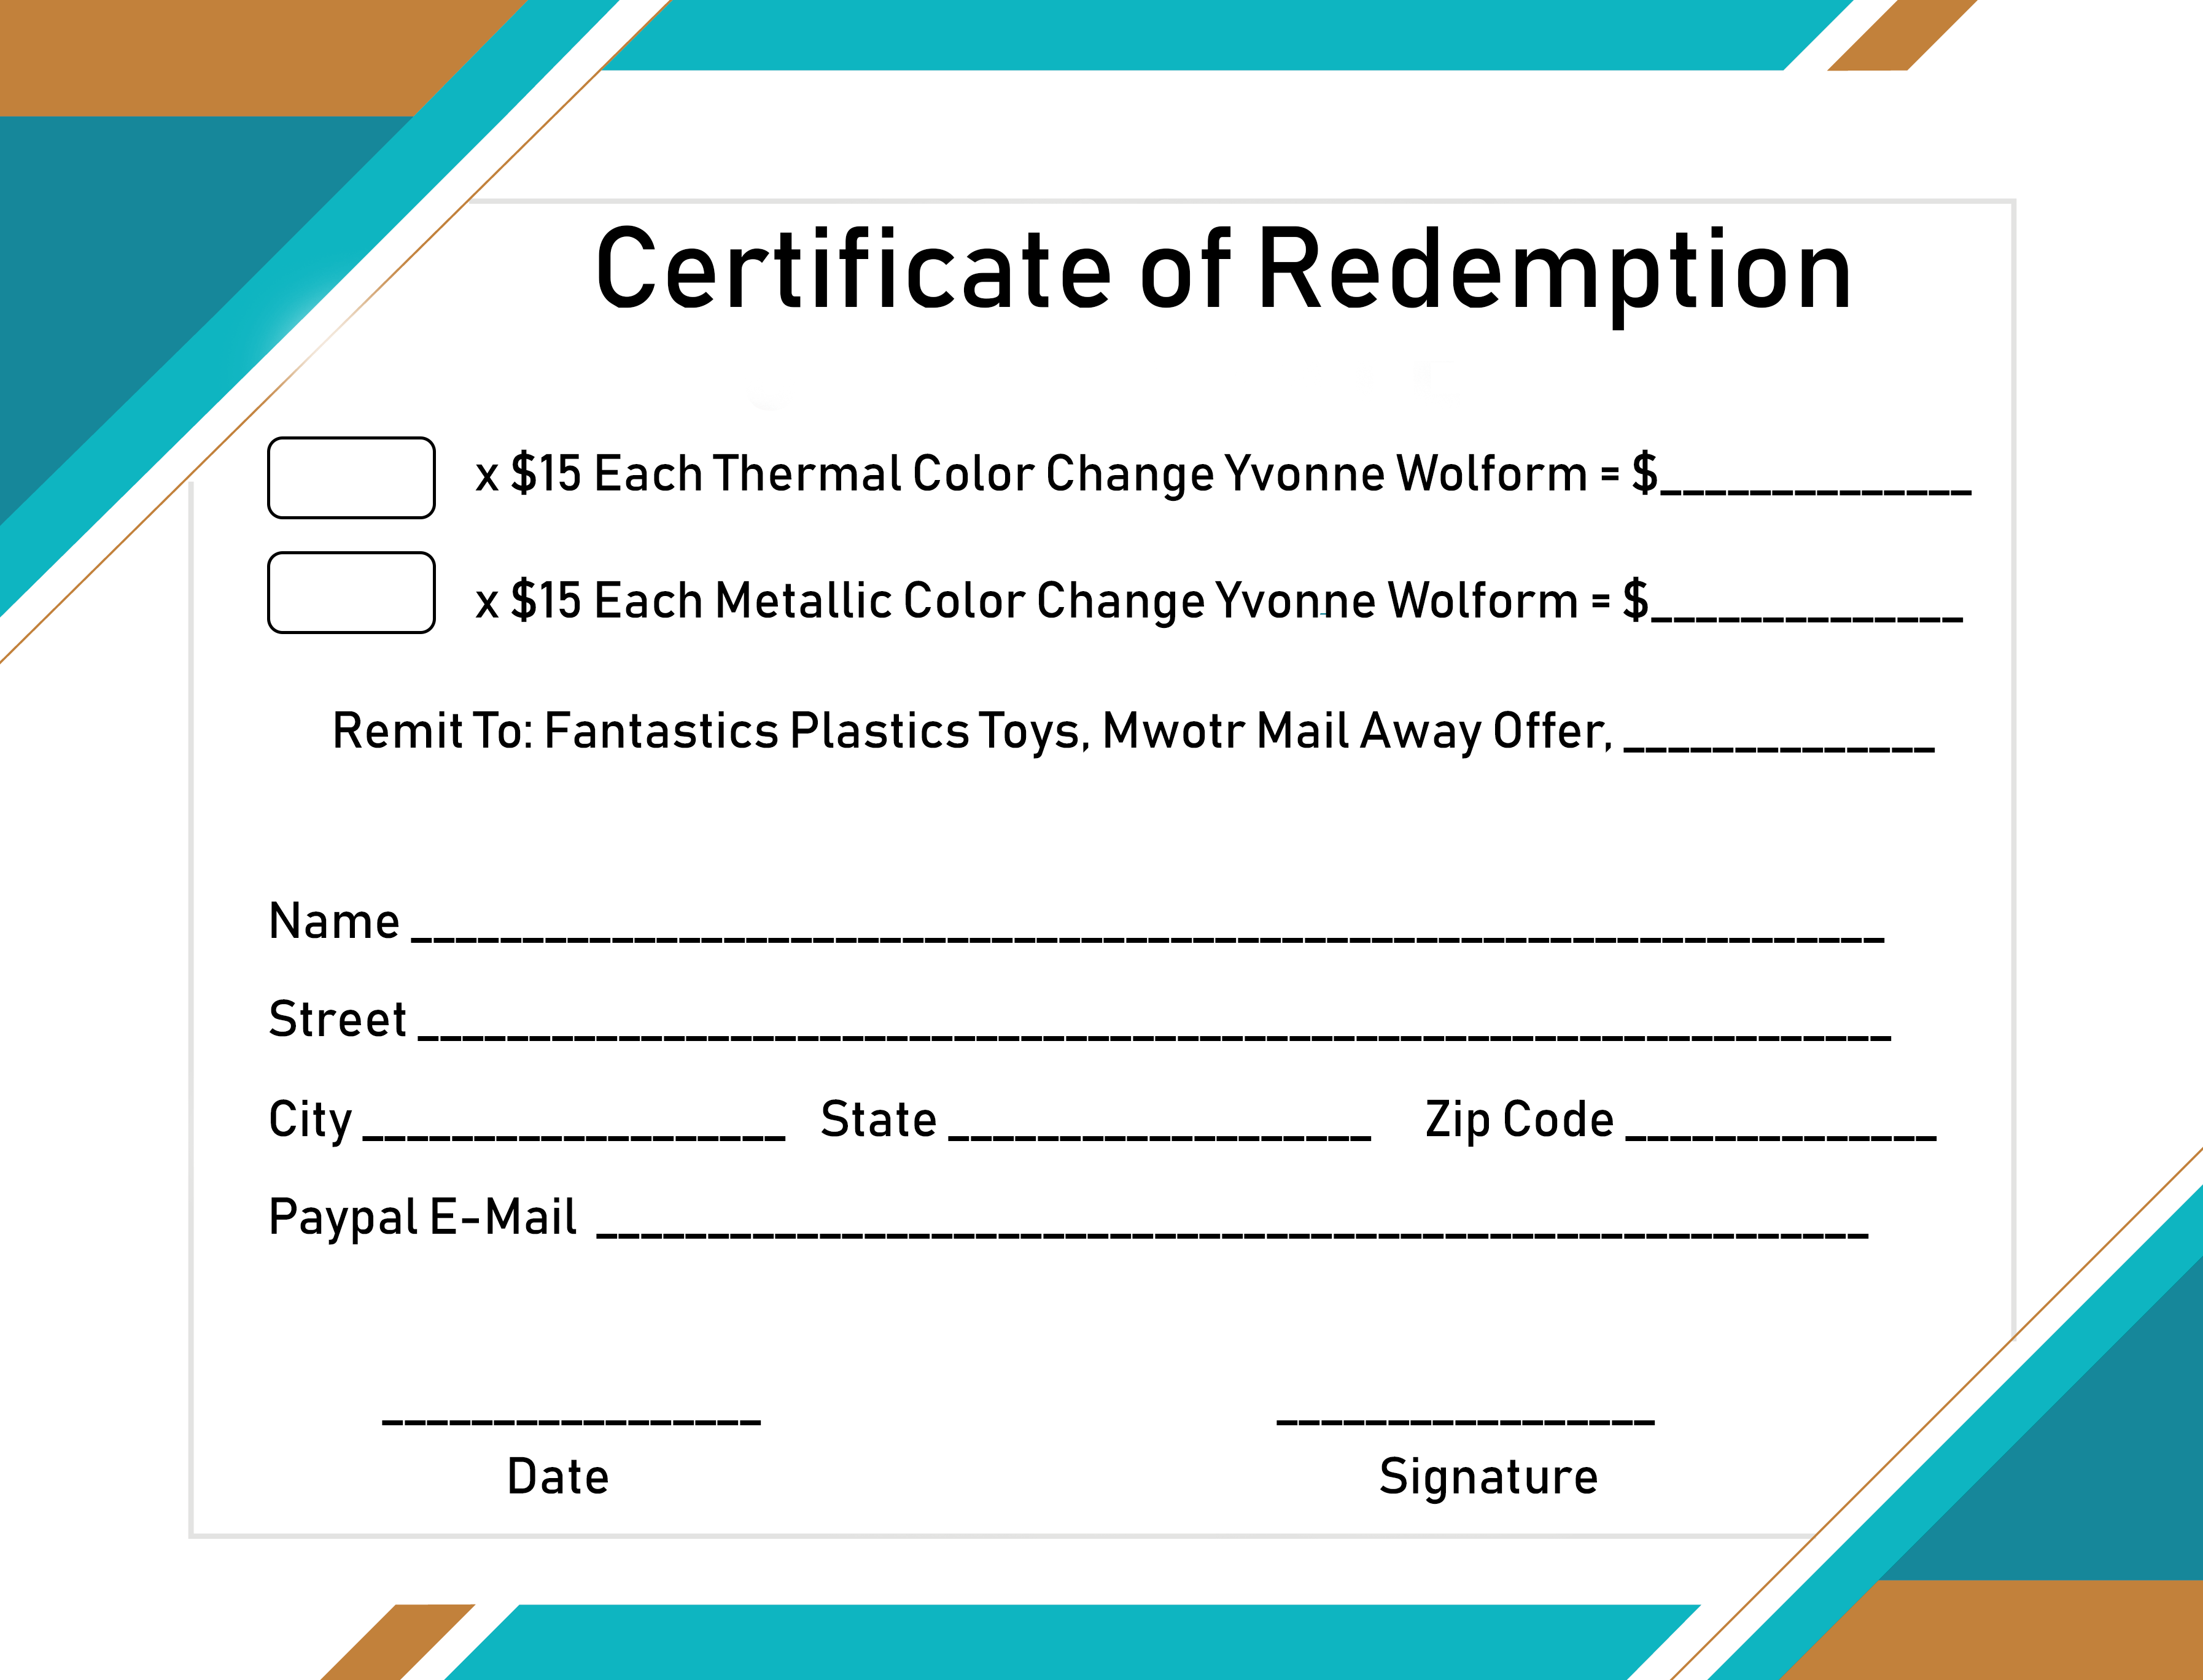 Certificate of Redemption Form